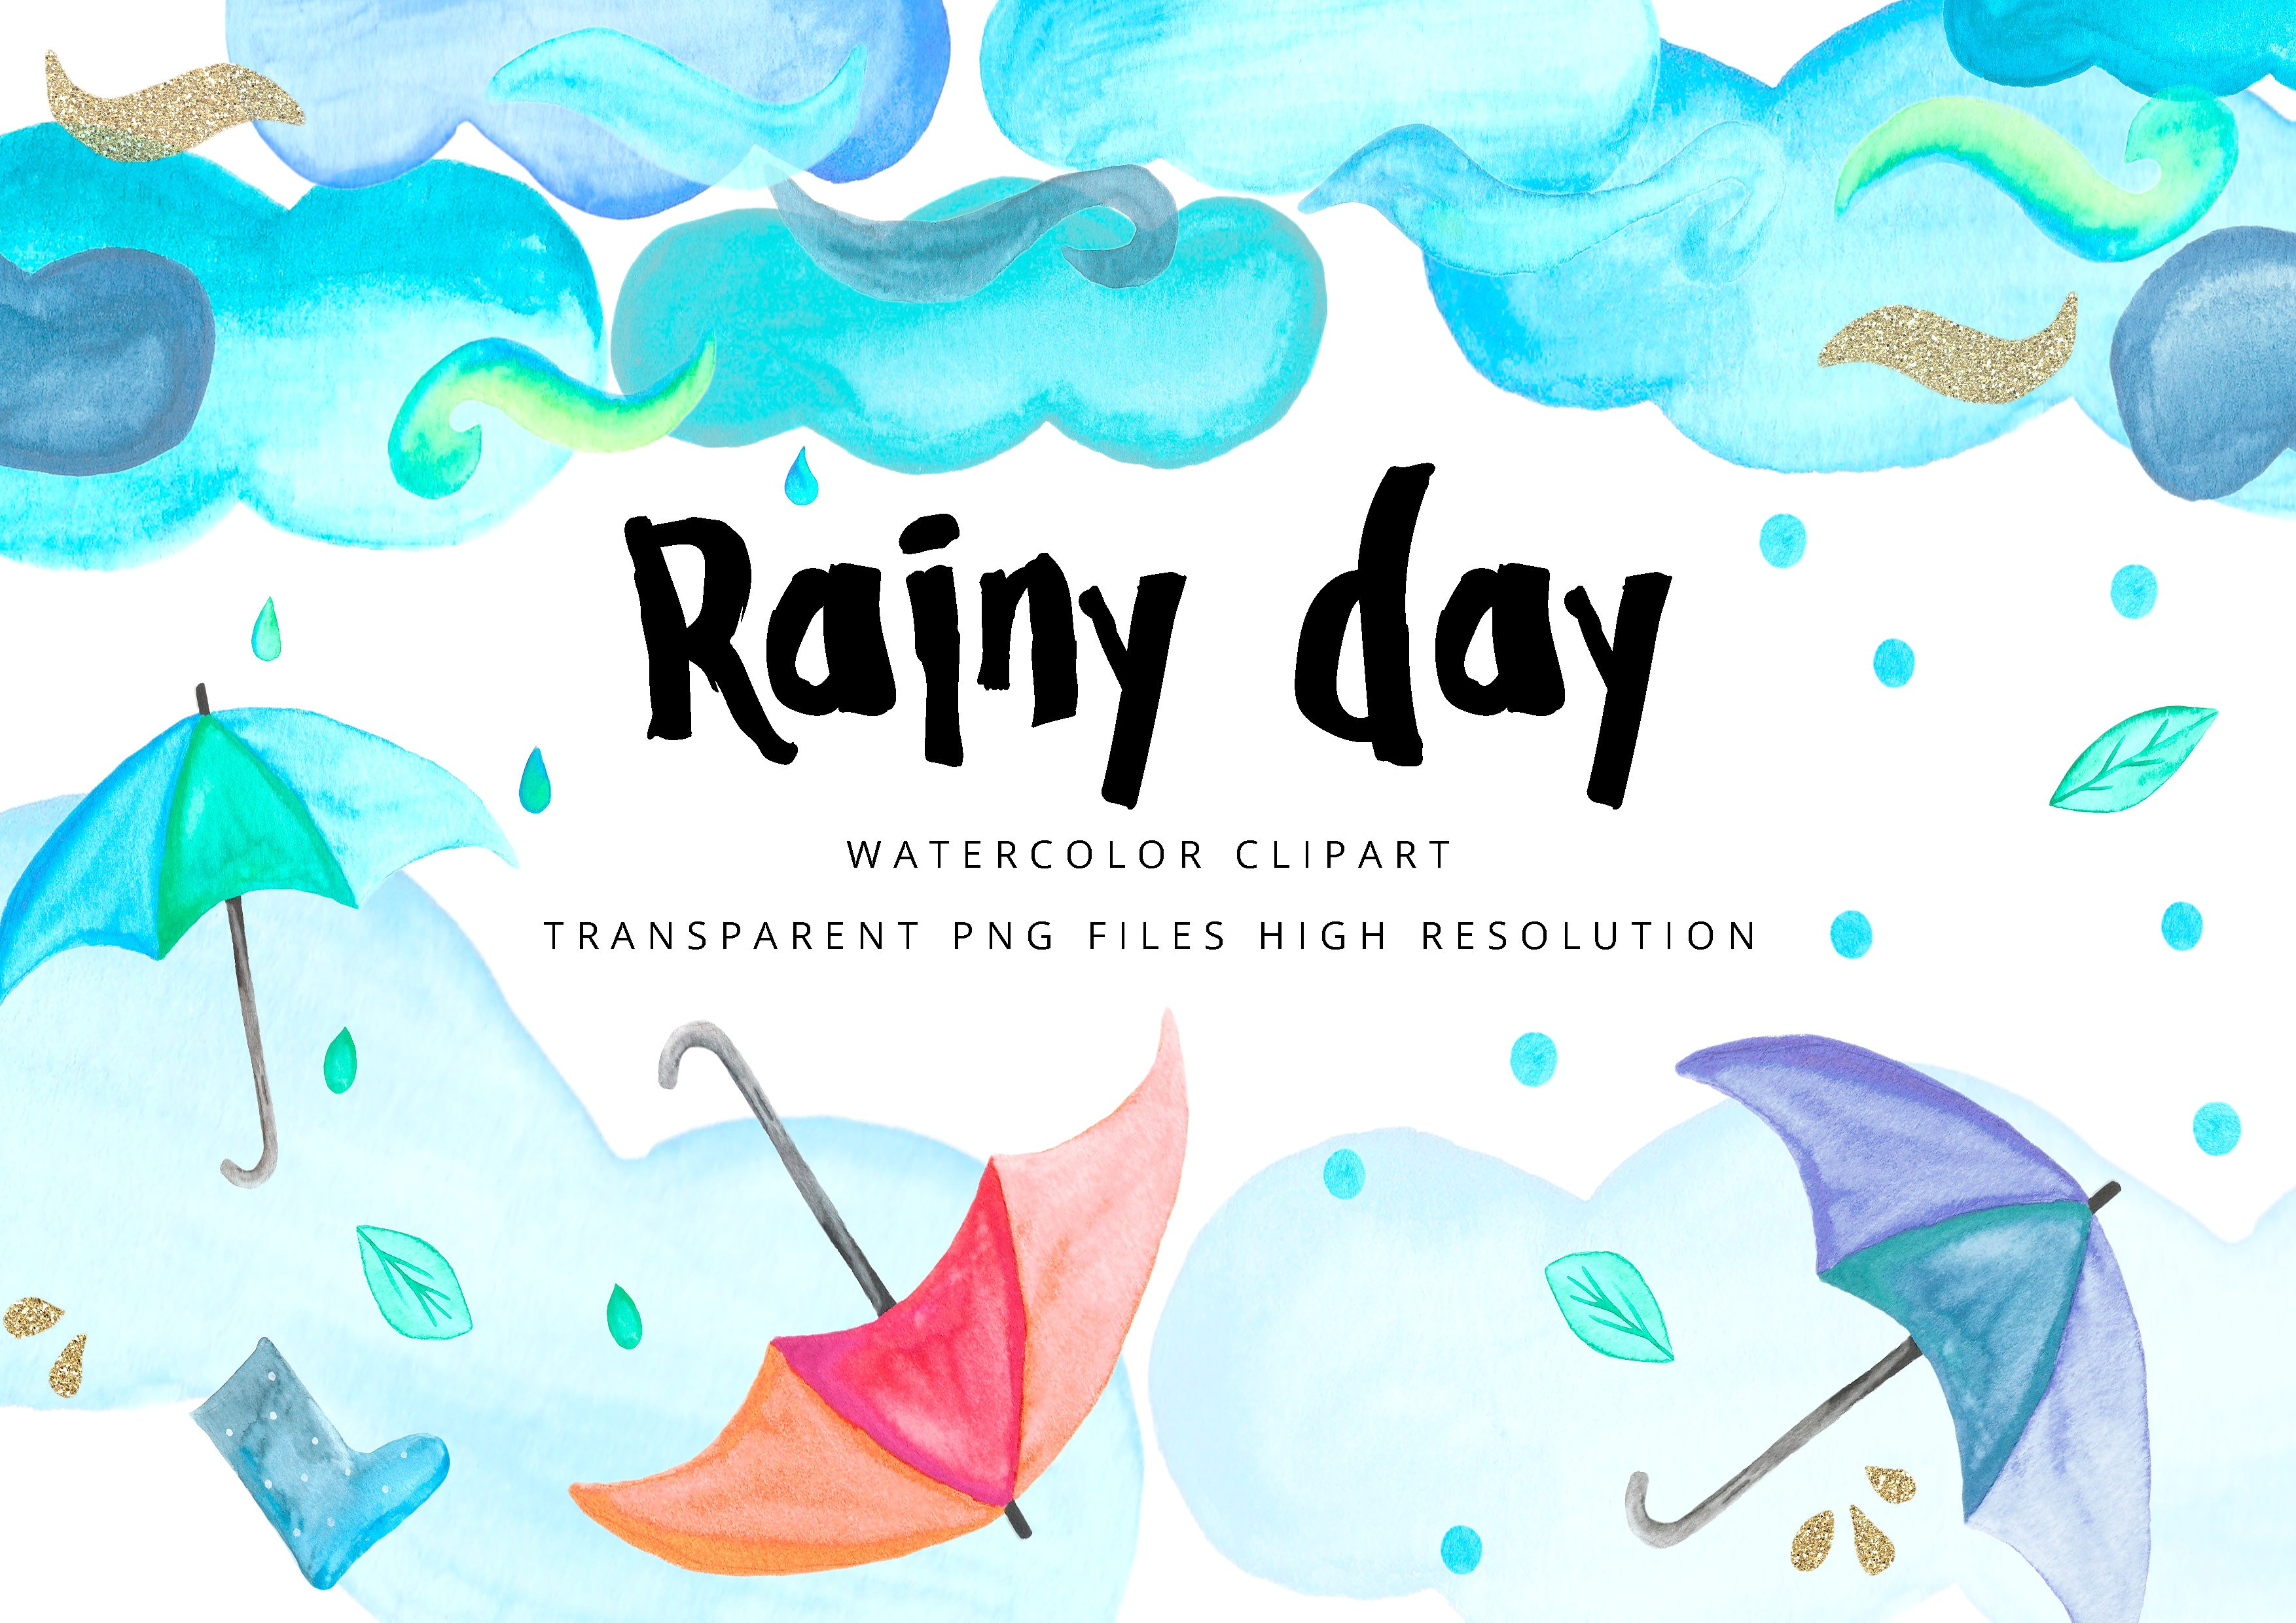 Raining clipart rainy day. Watercolor illustrations creative market